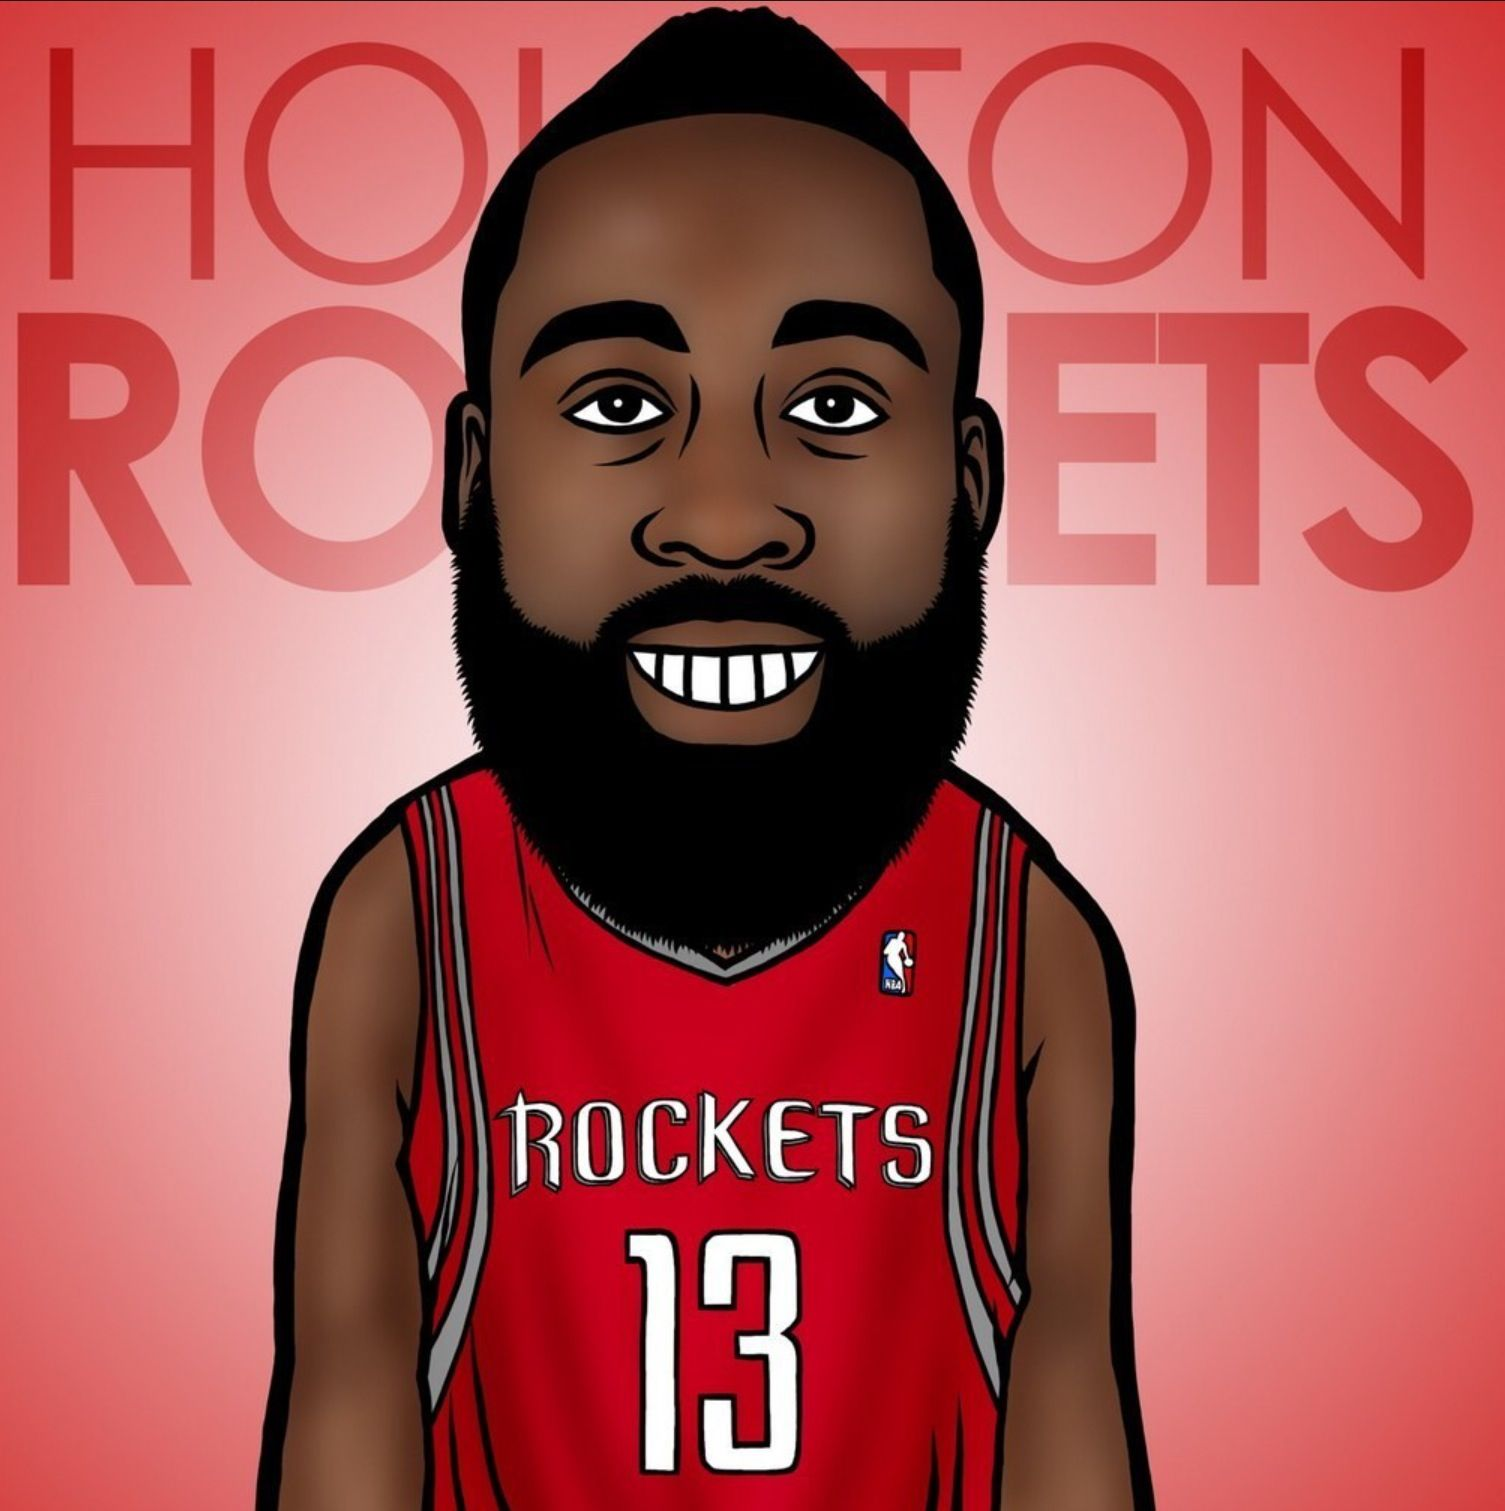 James Harden NBA cartoon image Pinterest